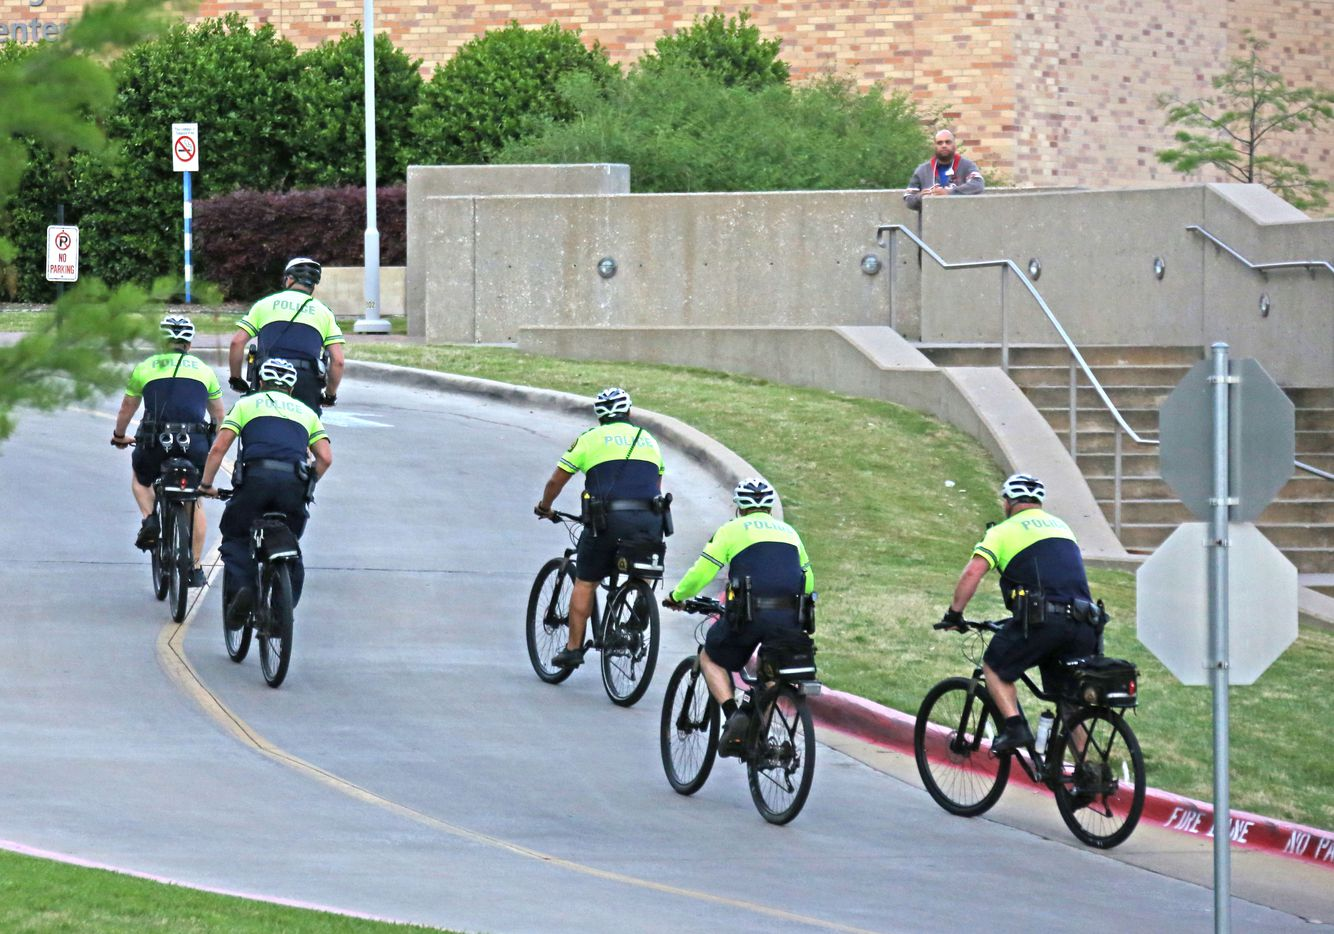 Dallas police officers bicycle to the entrance to the emergency room at Presbyterian Hospital in Dallas. Two Dallas policemen were reportedly shot at a nearby Home Depot and reportedly were transported to the Dallas hospital on April 24, 2018.